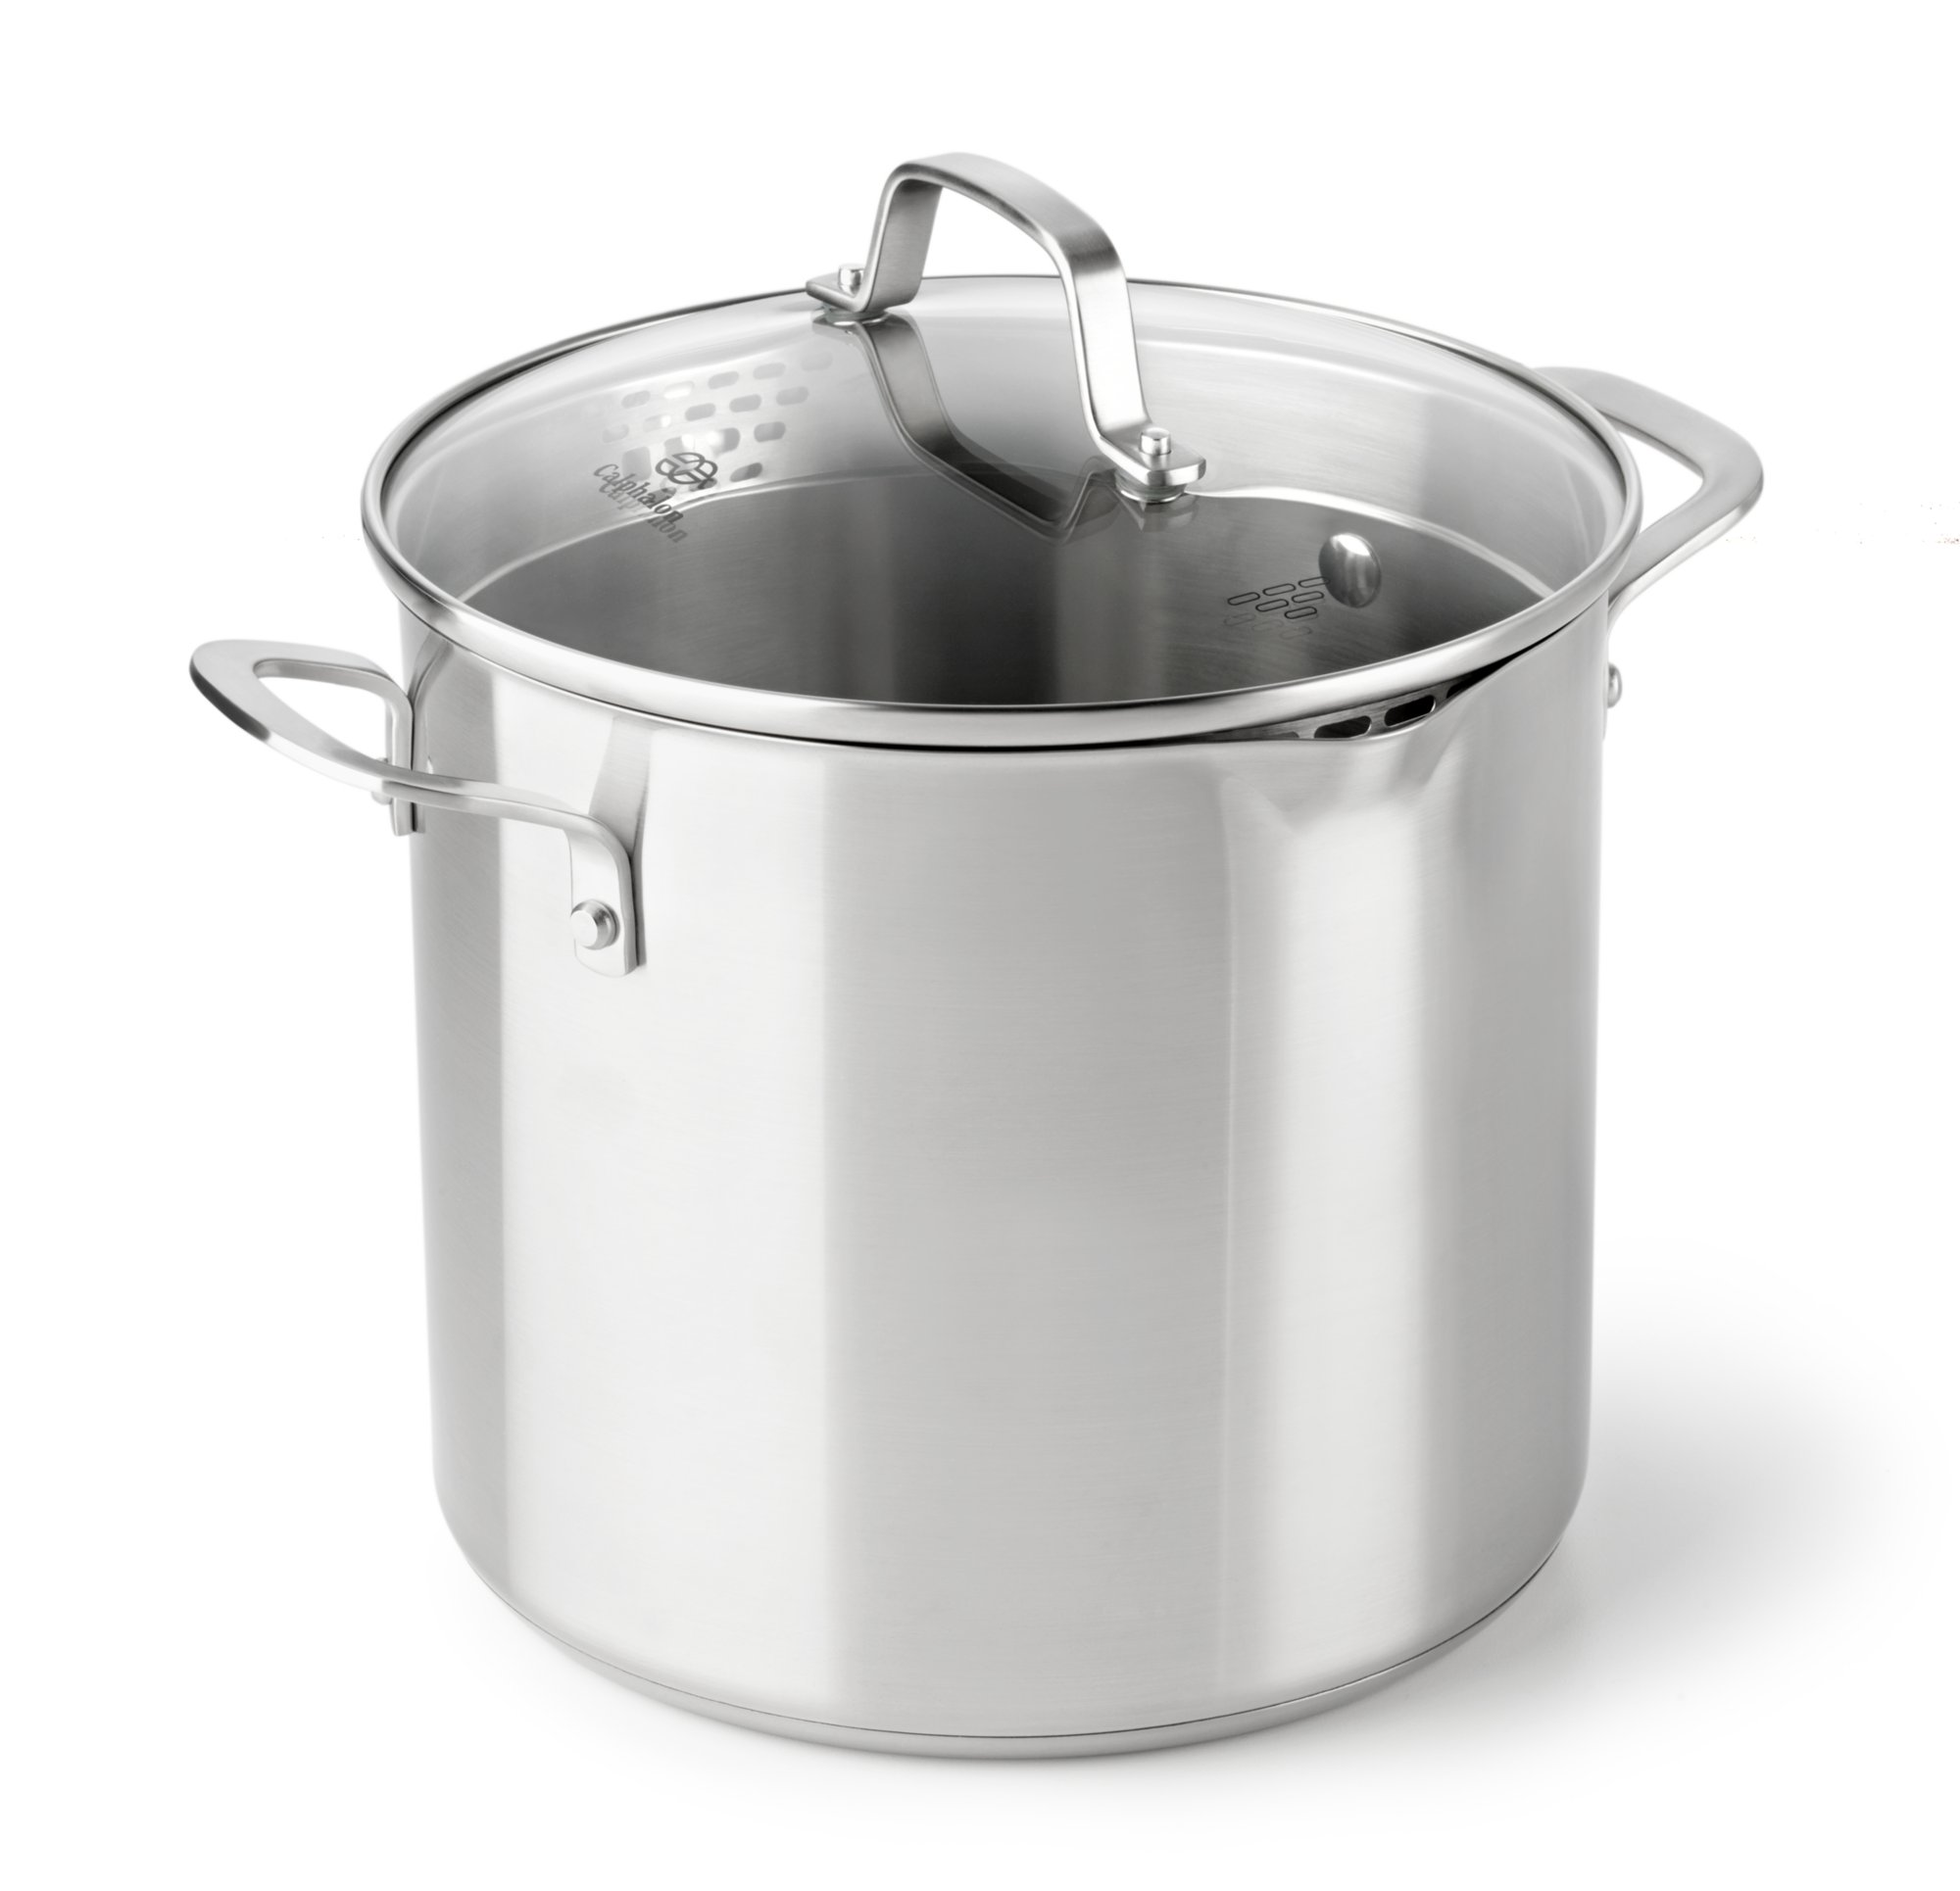 Calphalon Classic Stainless Steel 8-qt. Stock Pot with Cover